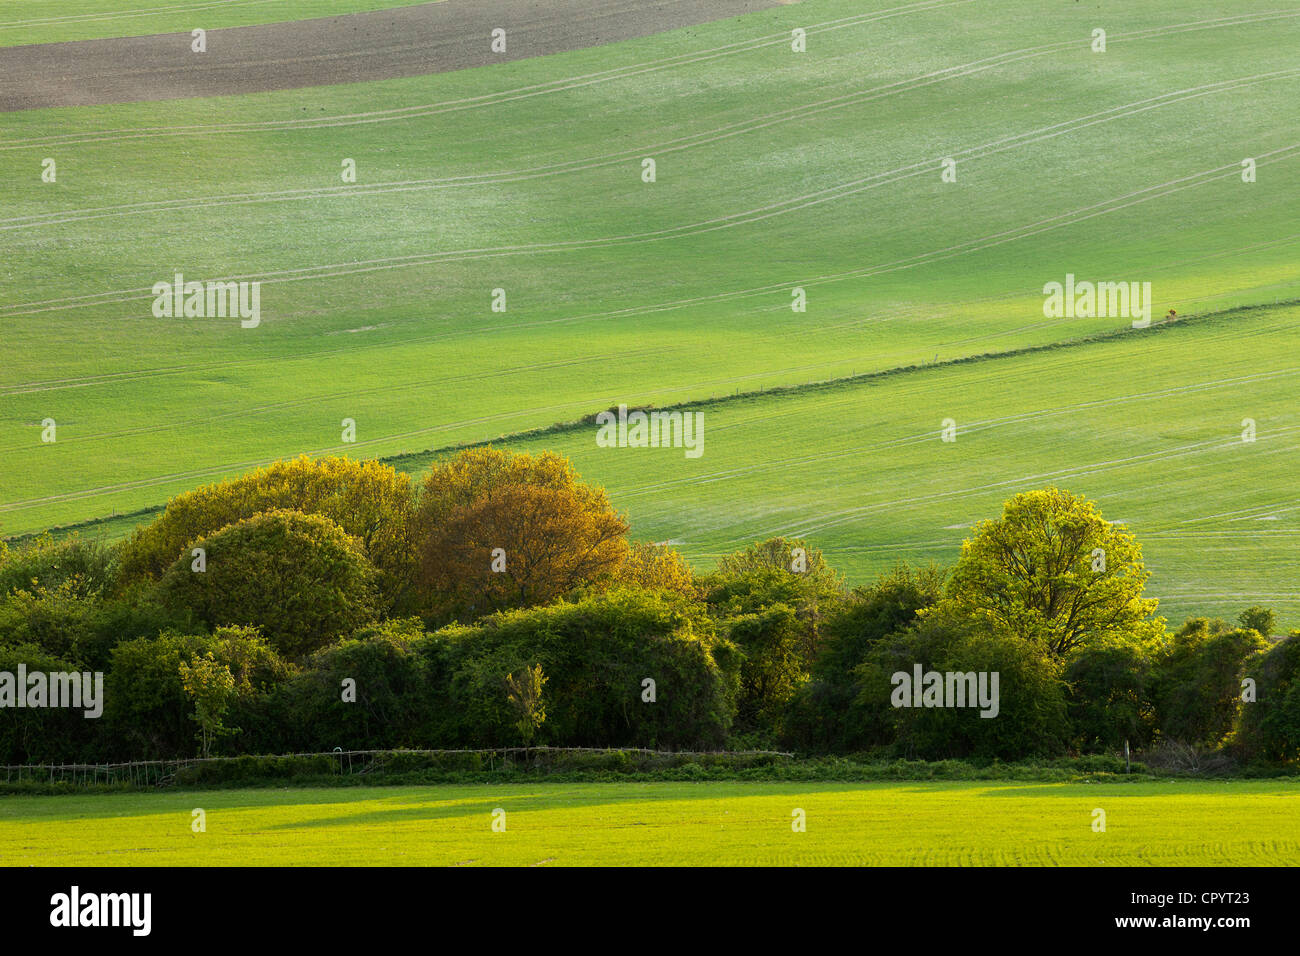 Le Parc National de South Downs, East Sussex, Angleterre. Photo Stock